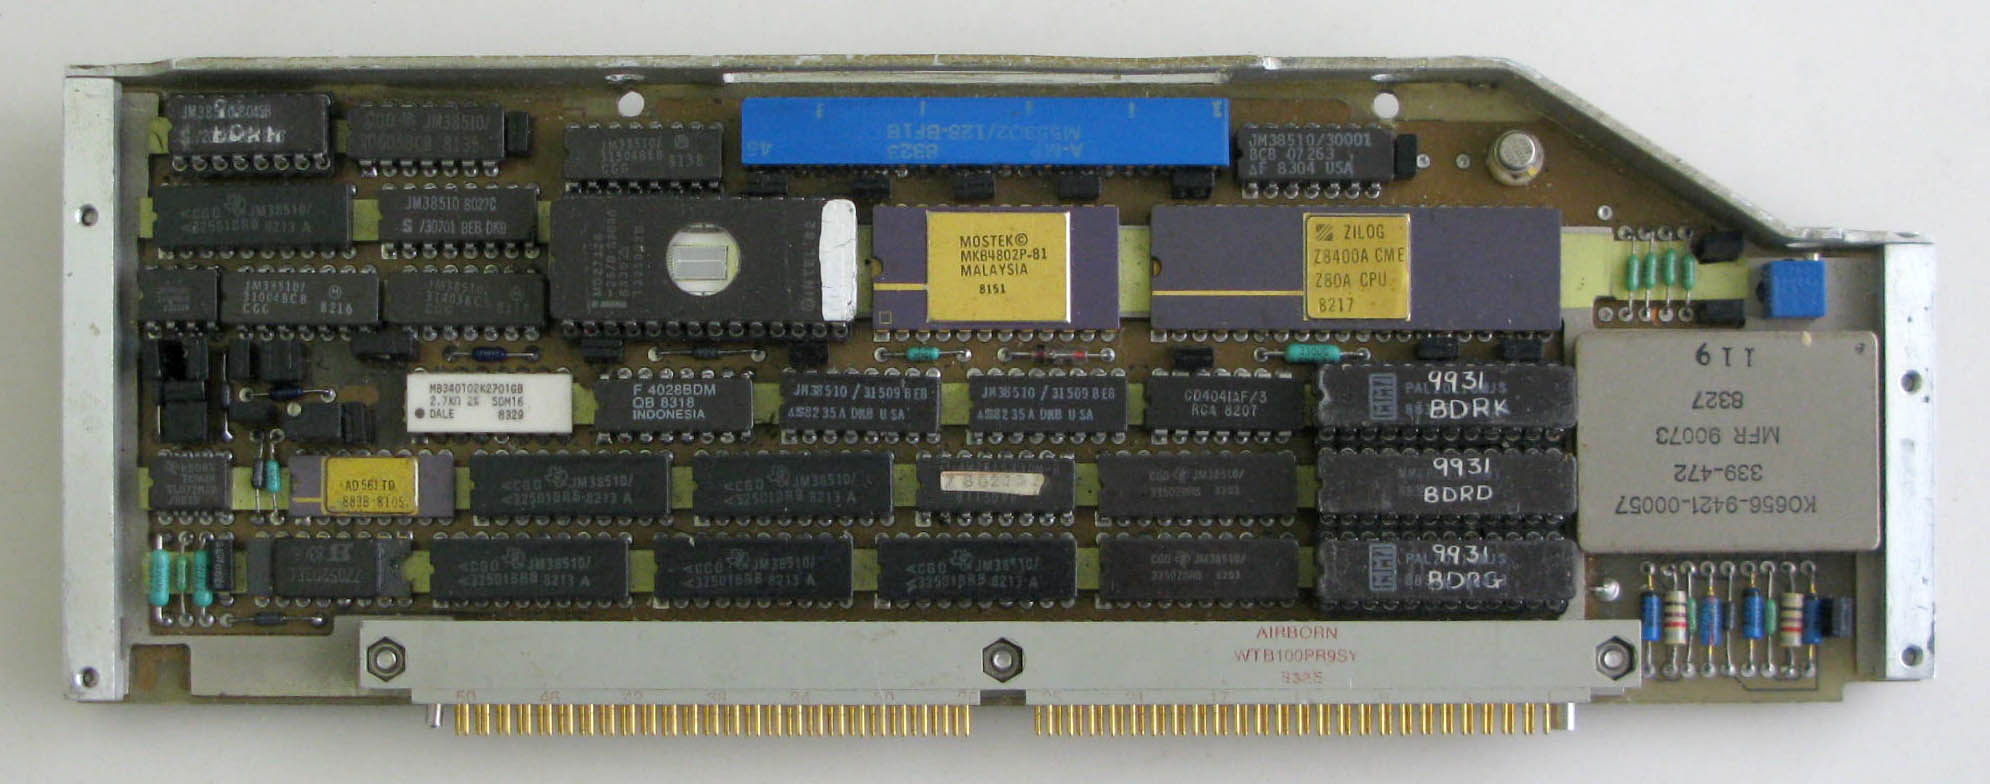 HUD PDU Display Control Card